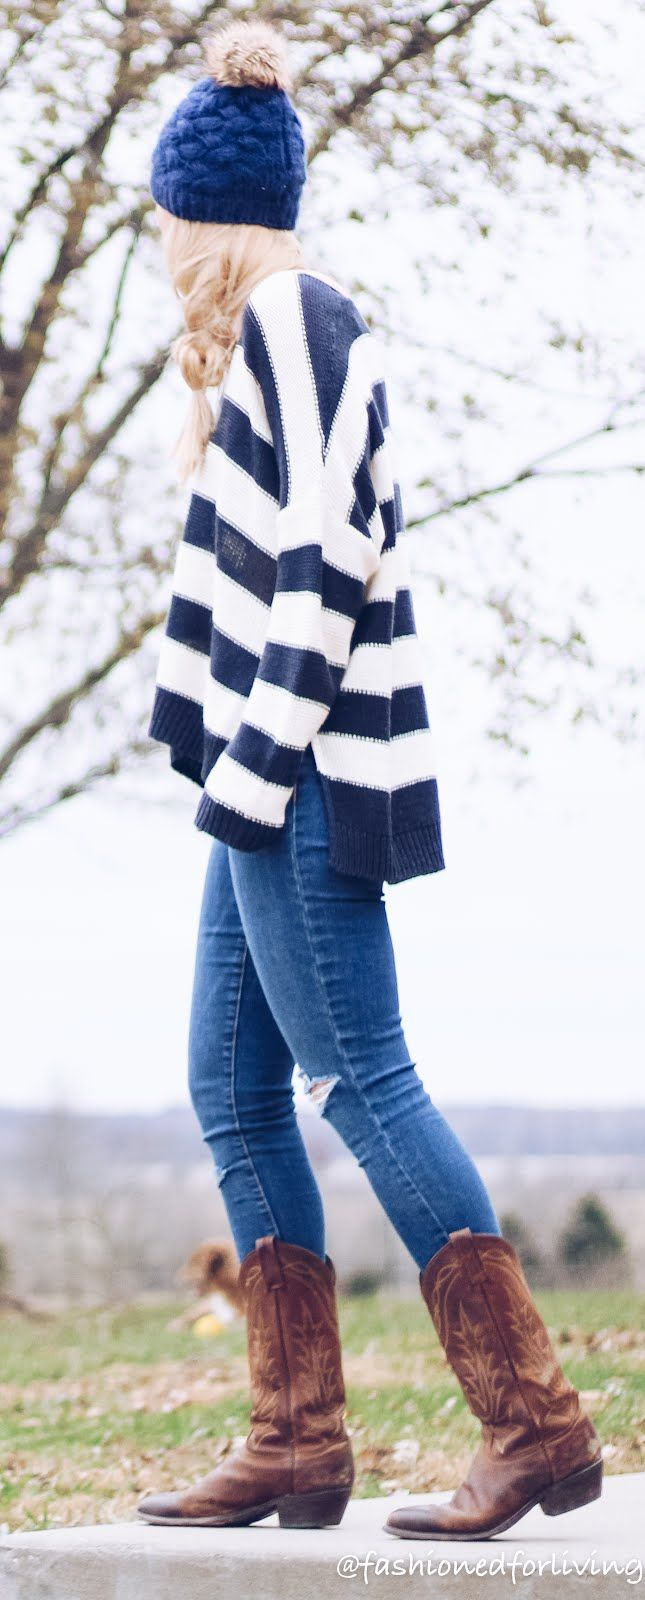 winter cowboy boot outfit with oversized sweater and corduroy shearling jacket